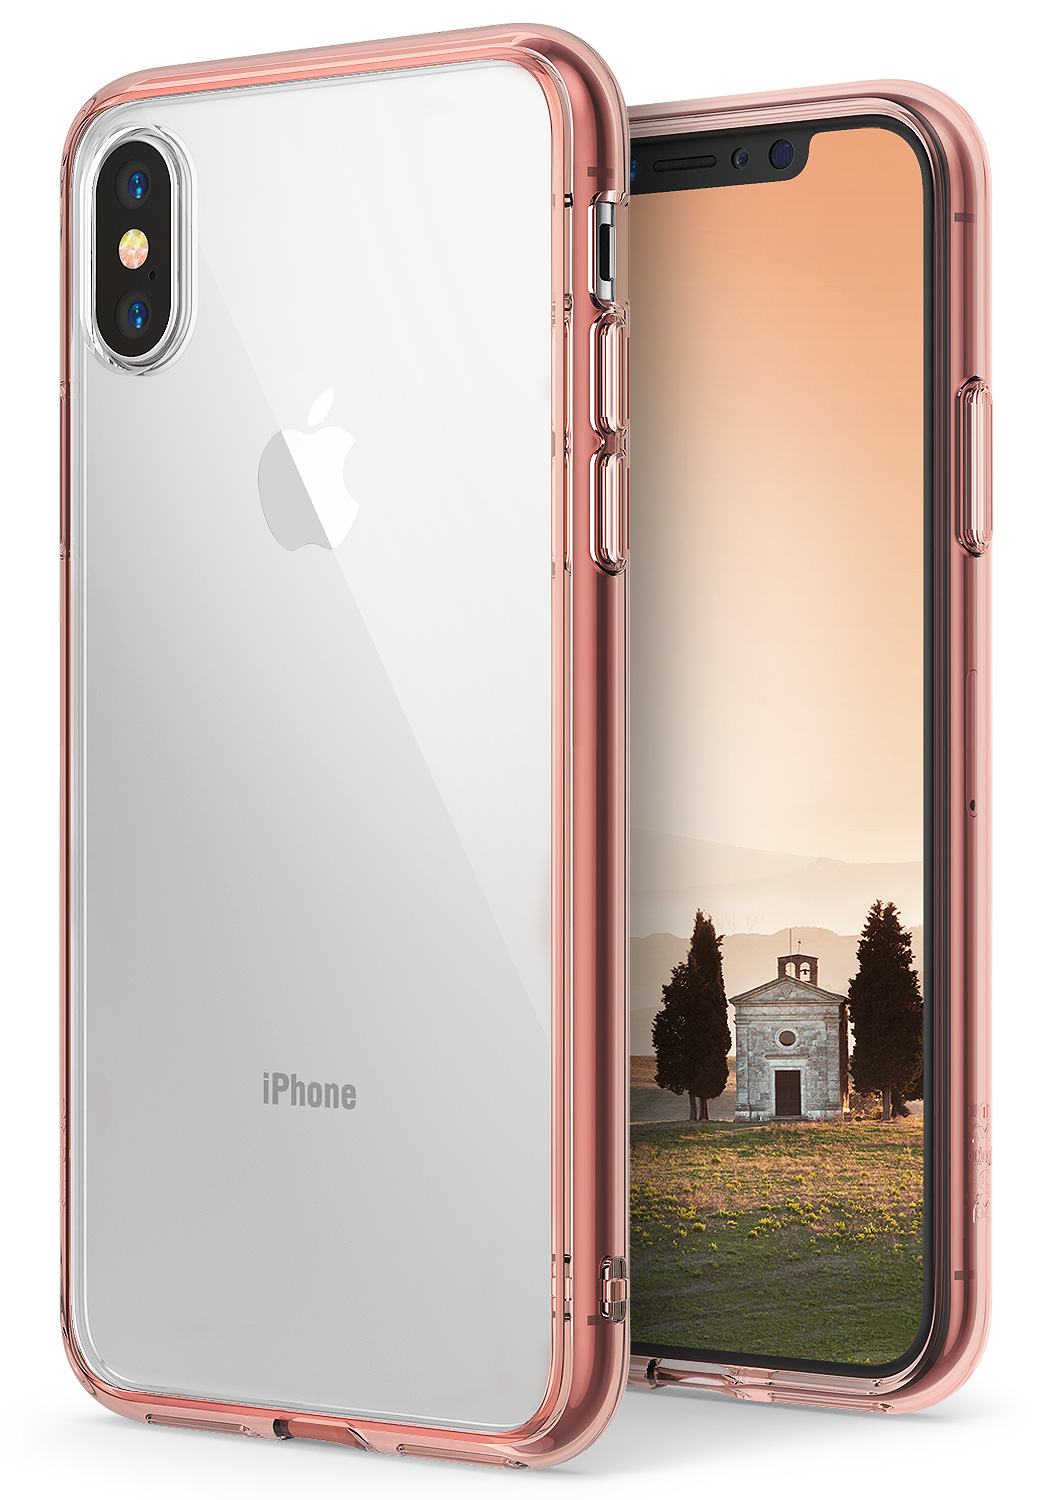 Apple IPhone X Phone Case, IPhone 10 Case, Ringke [FUSION] Clear Minimalist  Transparent PC Back TPU Bumper [Drop Protection] Scratch Resistant  Protective ...